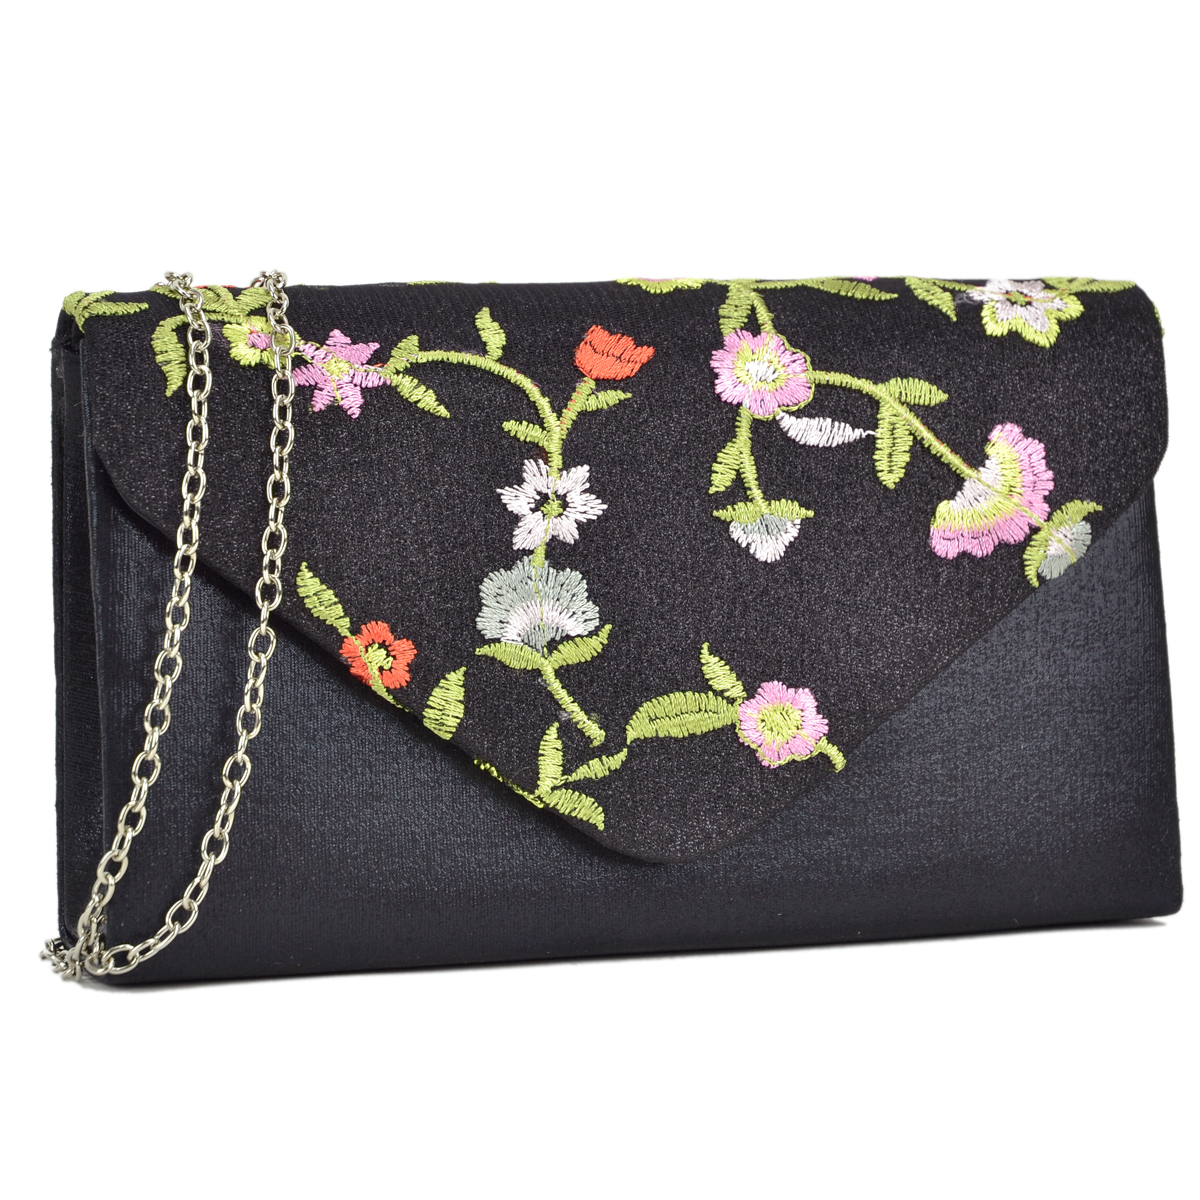 Velvety Frosted Evening Clutch with Flower Patch Design